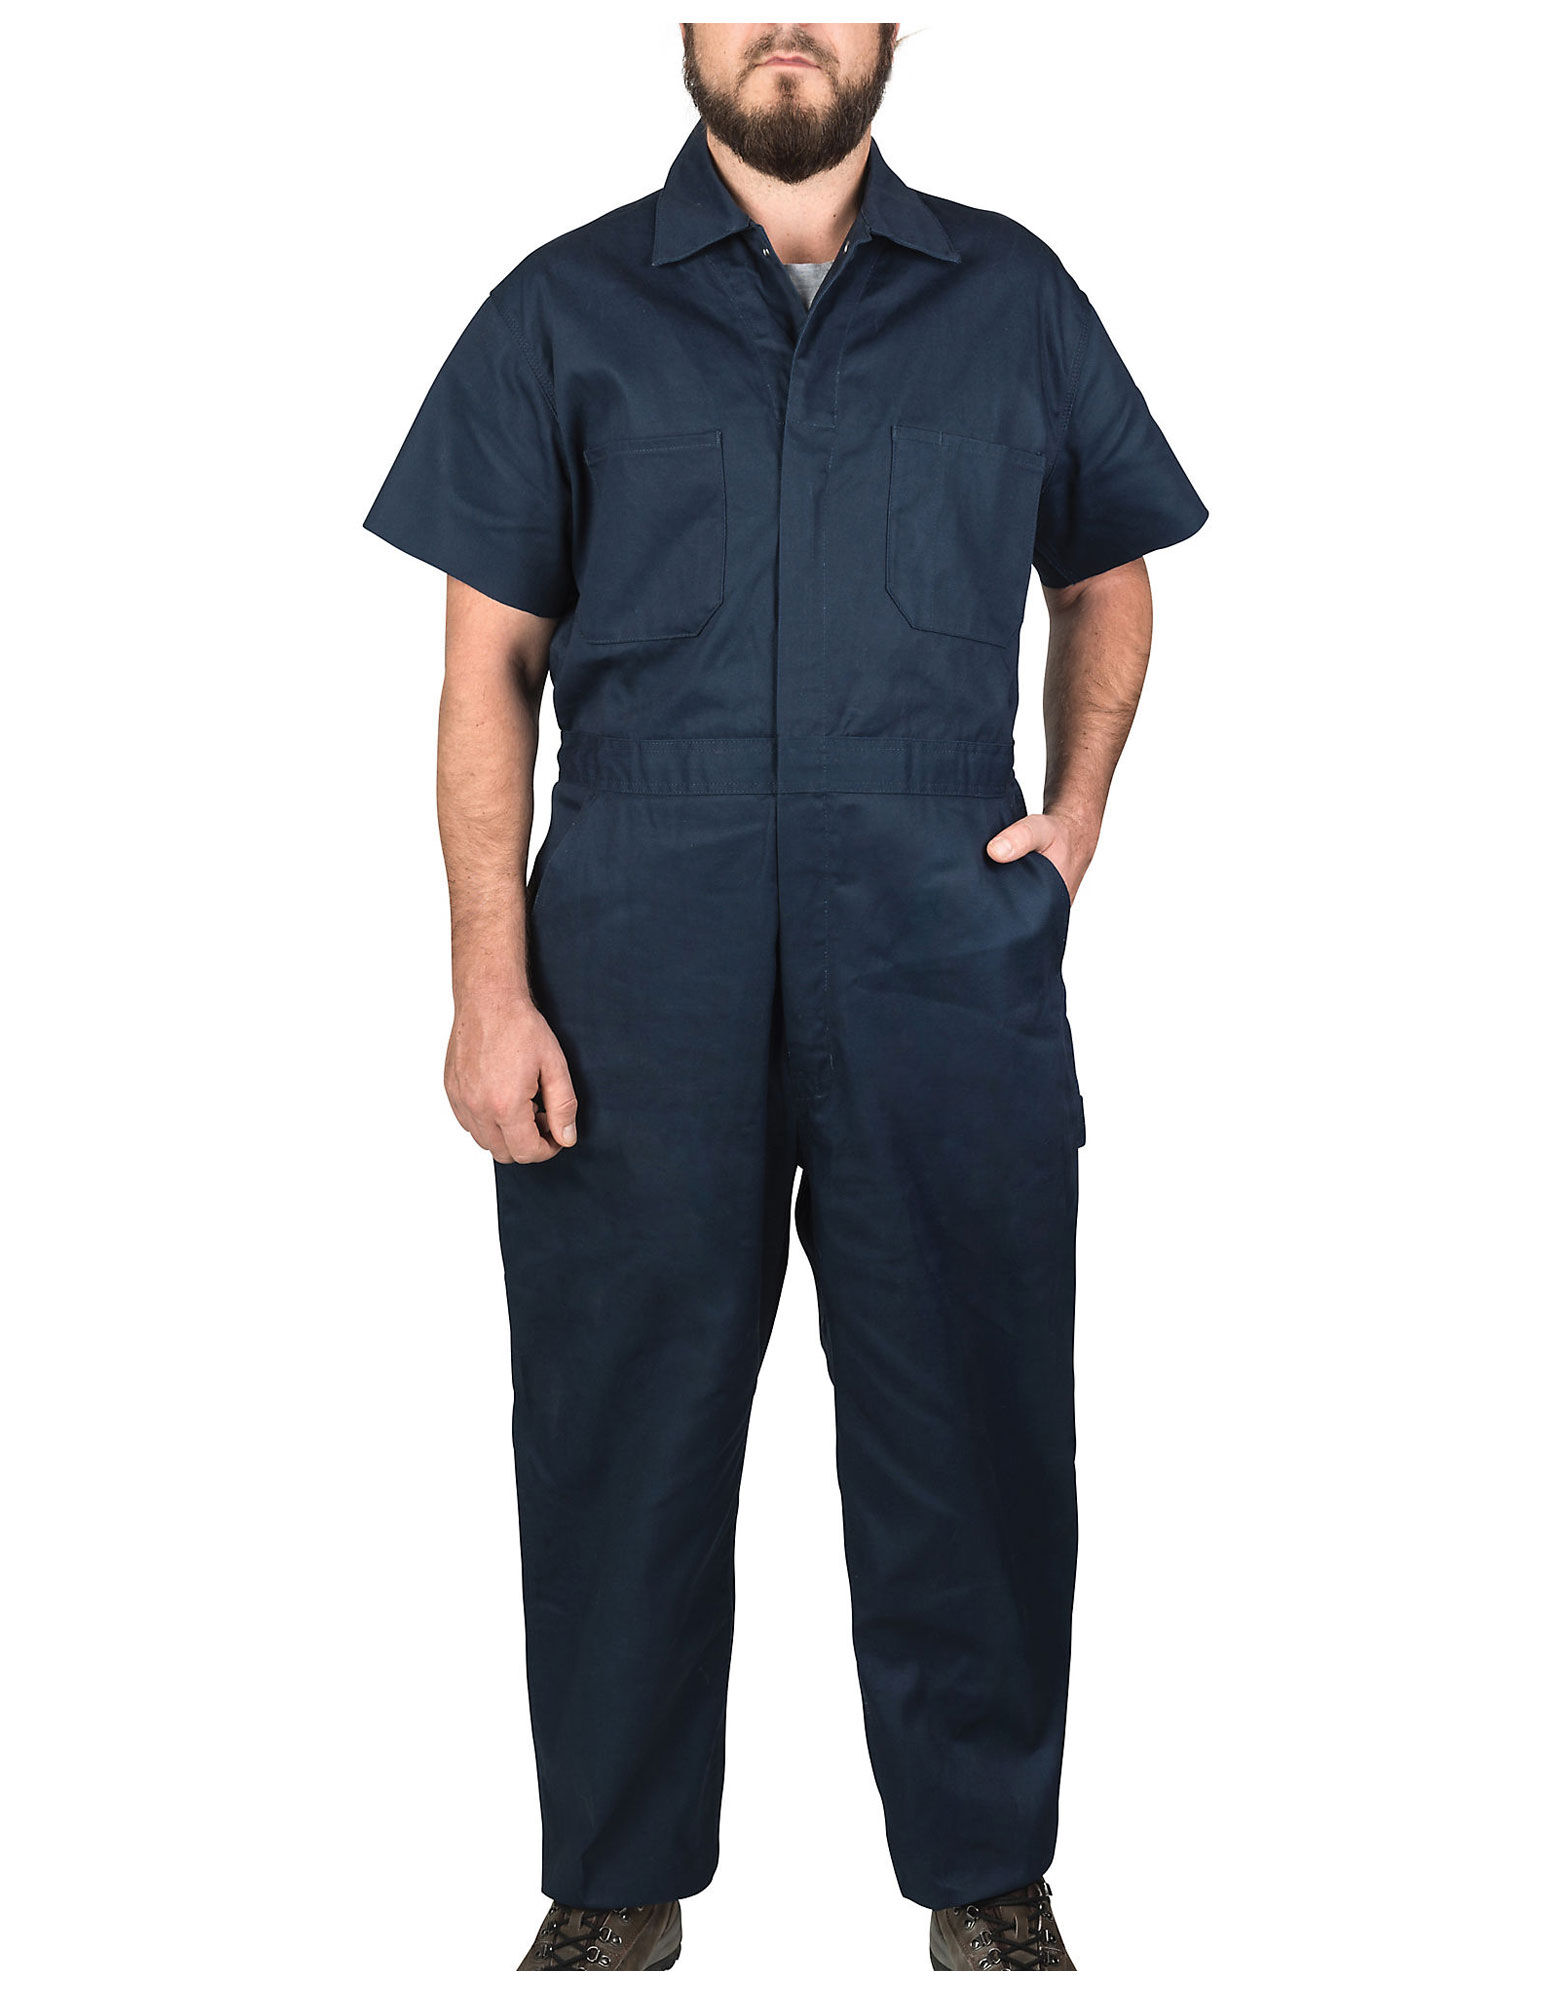 Rated 5 out of 5 by phi2ok from Nice Range of Motion I recently purchased a pair of the new Flex Short Sleeve Coveralls and so far the slight additional 'stretch' is an added plus. This additional 'stretch' provides that little extra room/comfort when reaching and bending/5(45).